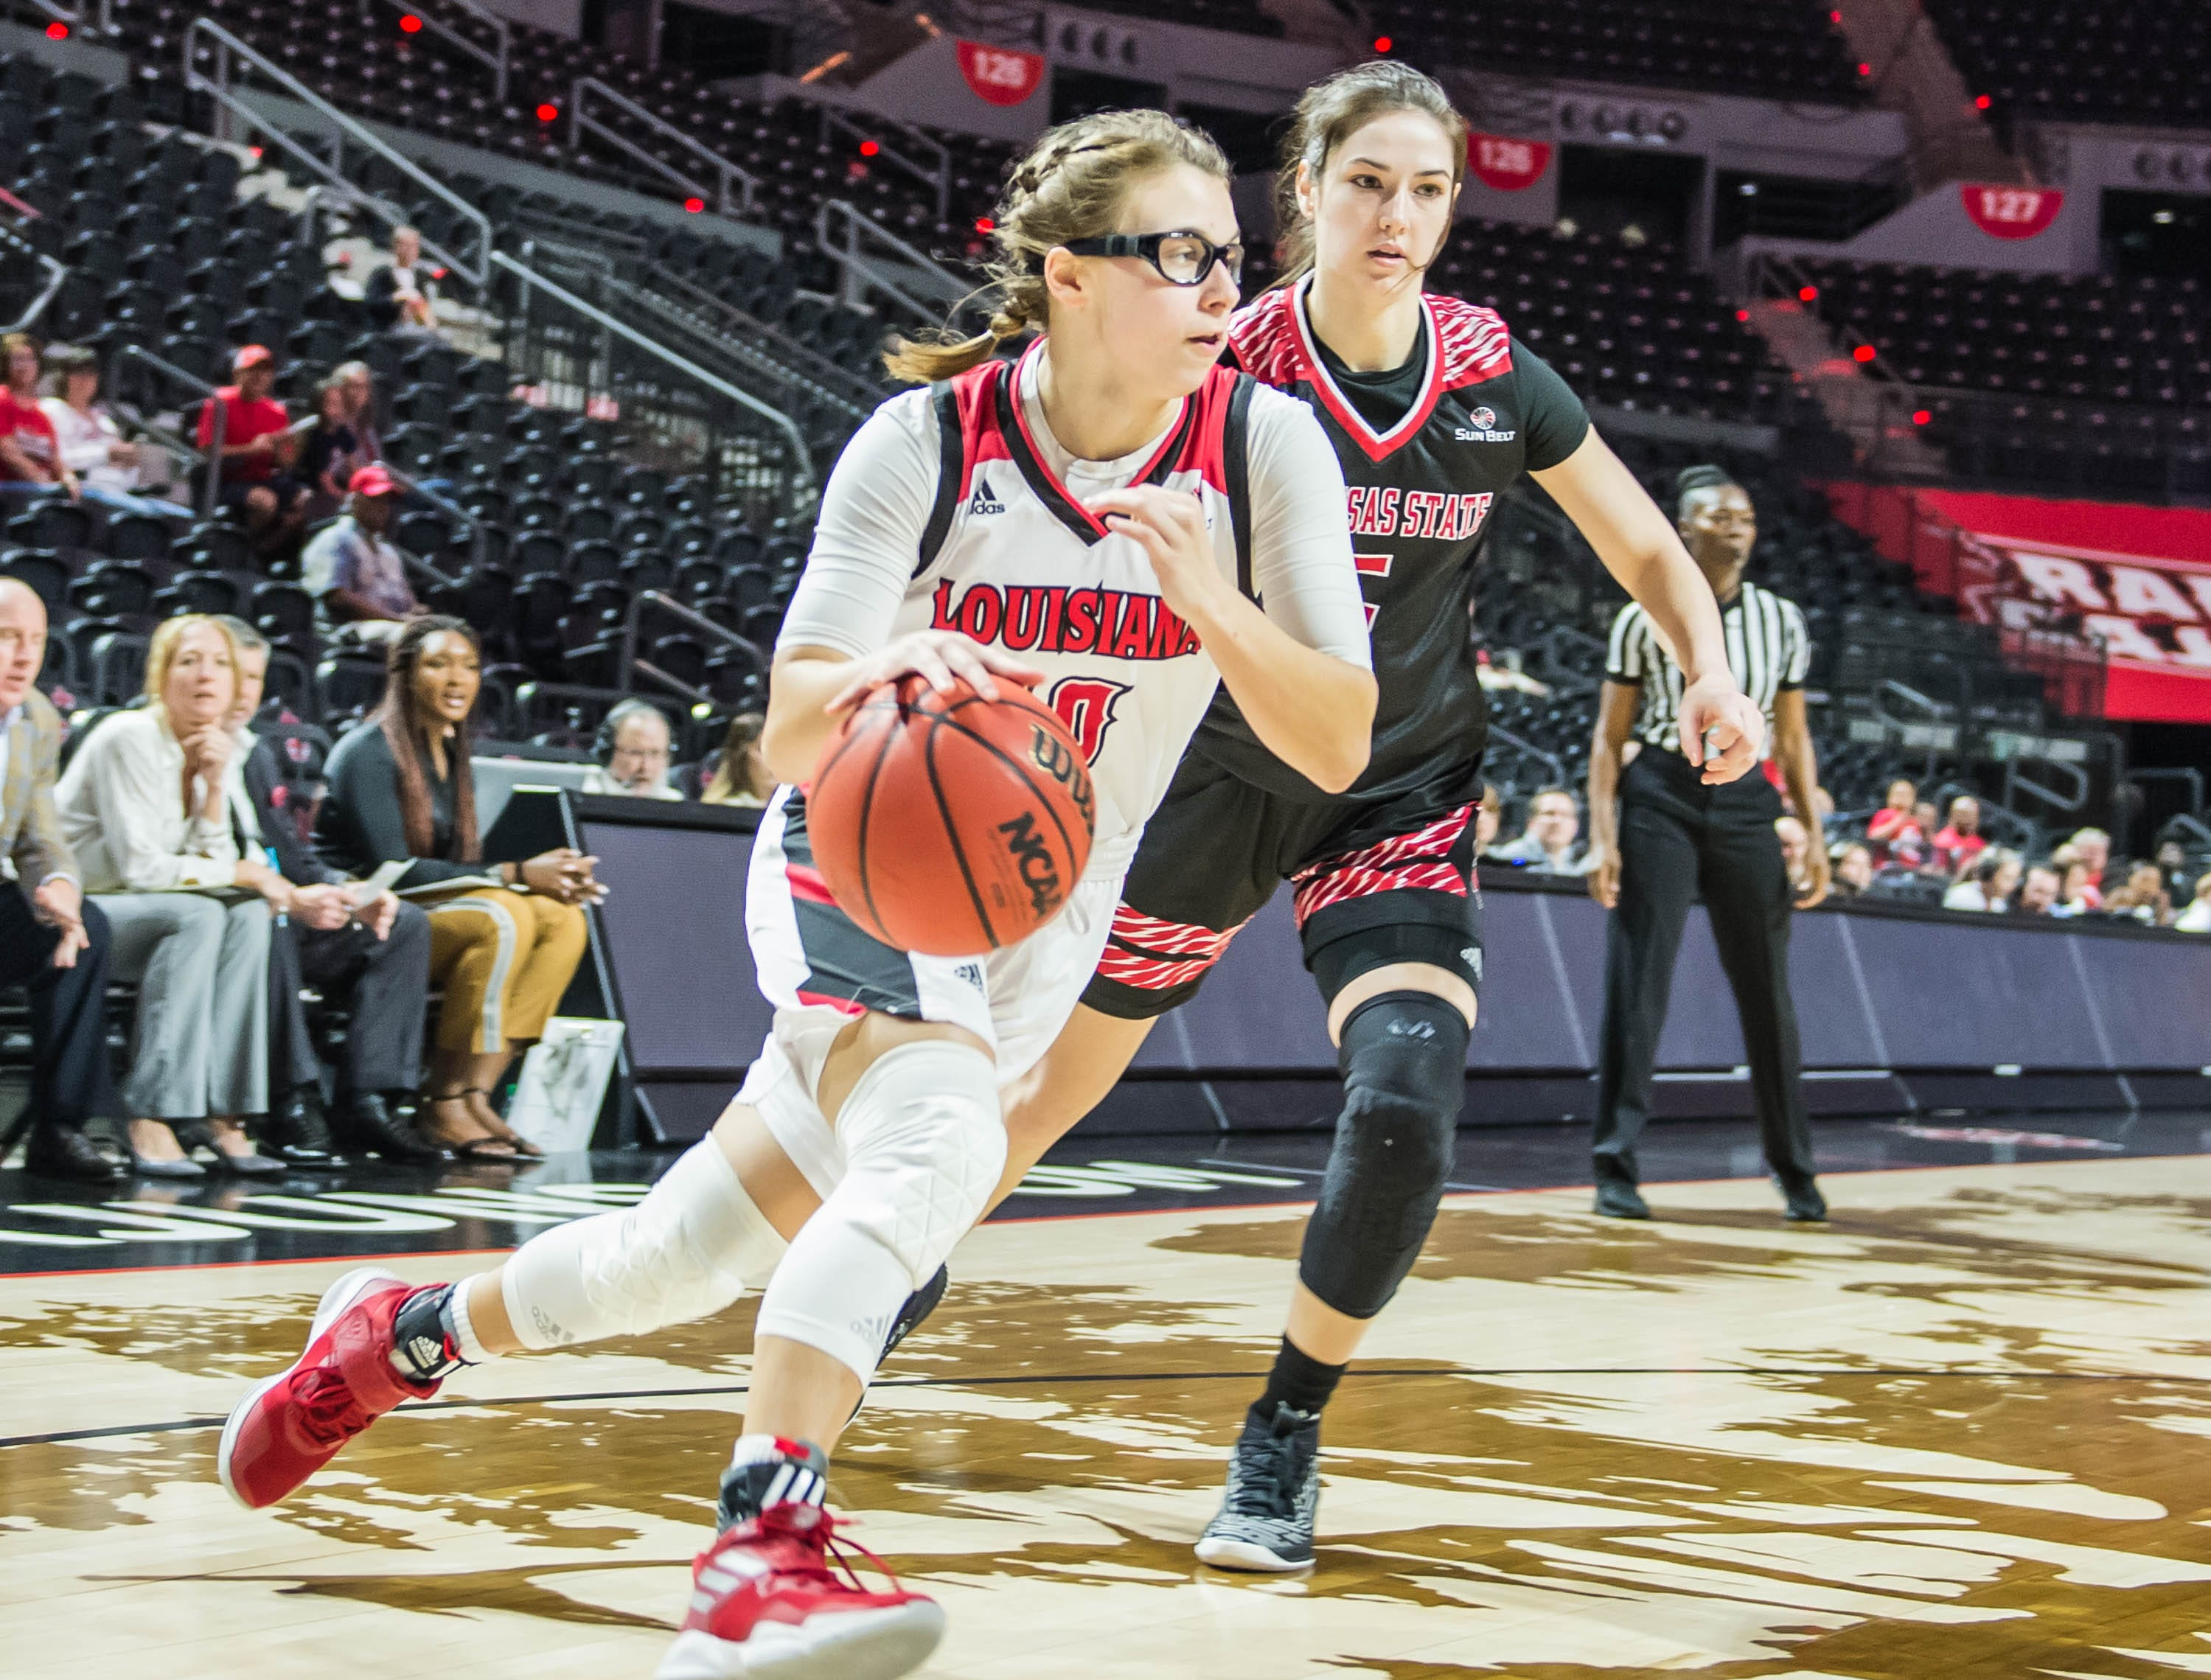 Andrea Cournoyer (10) works the baseline to the basket as the Cajuns women's basketball team plays the Arkansas State Red Wolves at the Cajundome on Saturday, March 9, 2019.